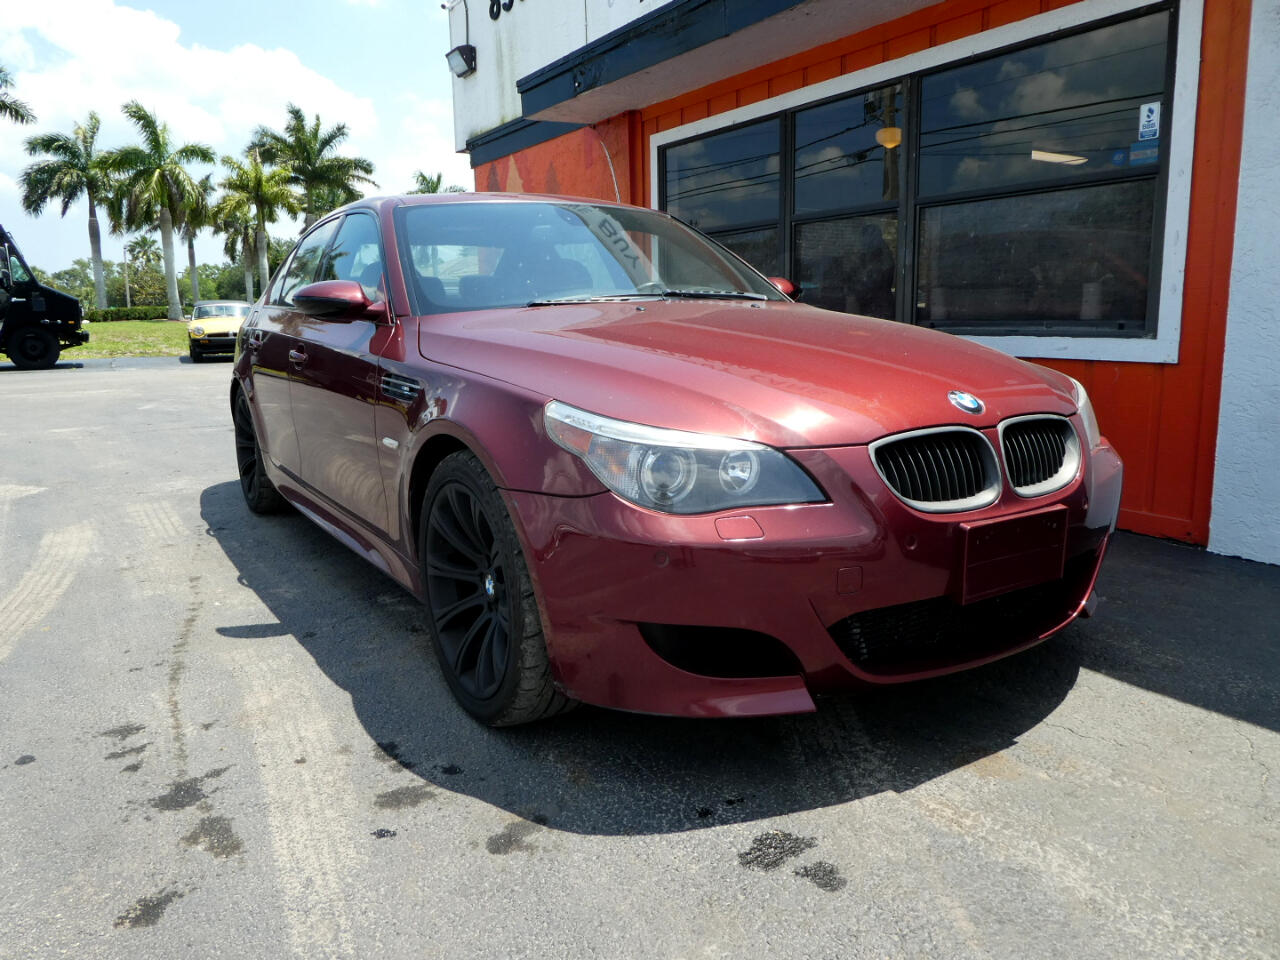 BMW 5 Series M5 4dr Sdn 2006